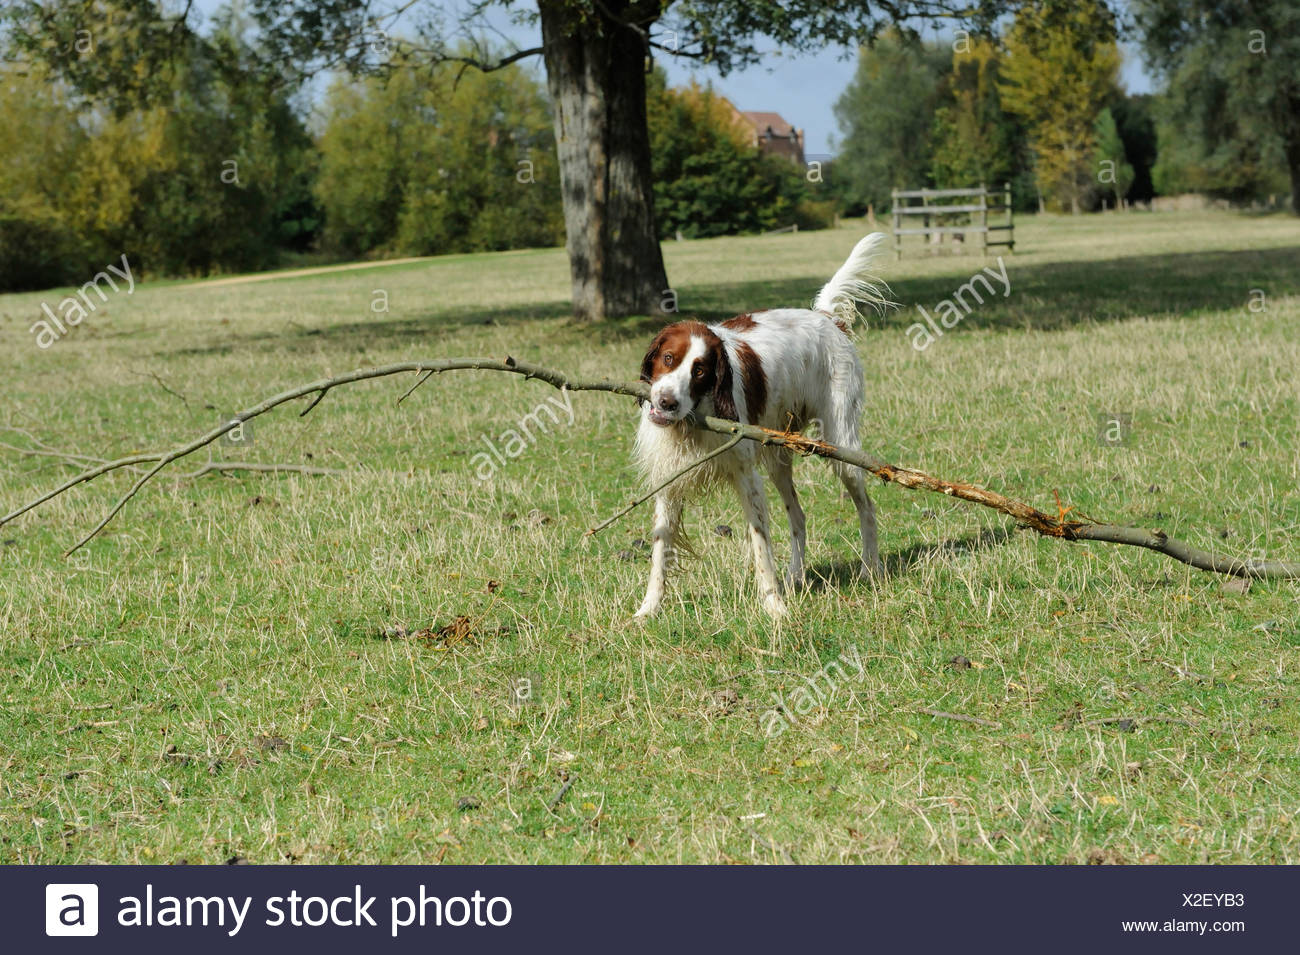 A red and white setter holding a long stick in his mouth - Stock Image